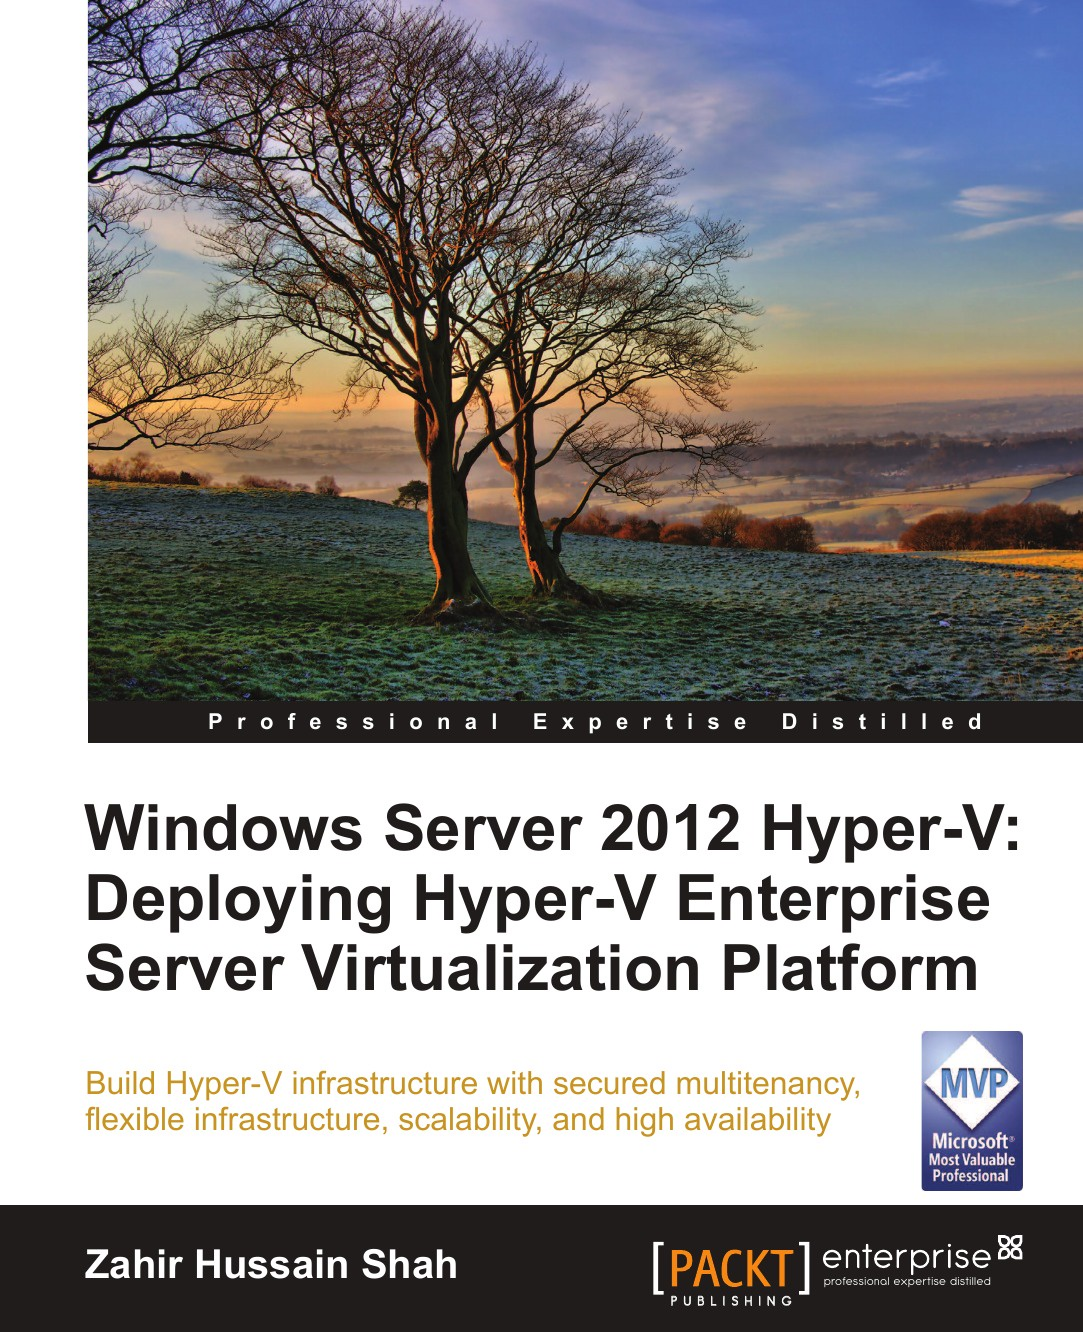 Zahir Hussain Shah, Shah Windows Server 2012 Hyper-V. Deploying the Hyper-V Enterprise Virtualization Platform